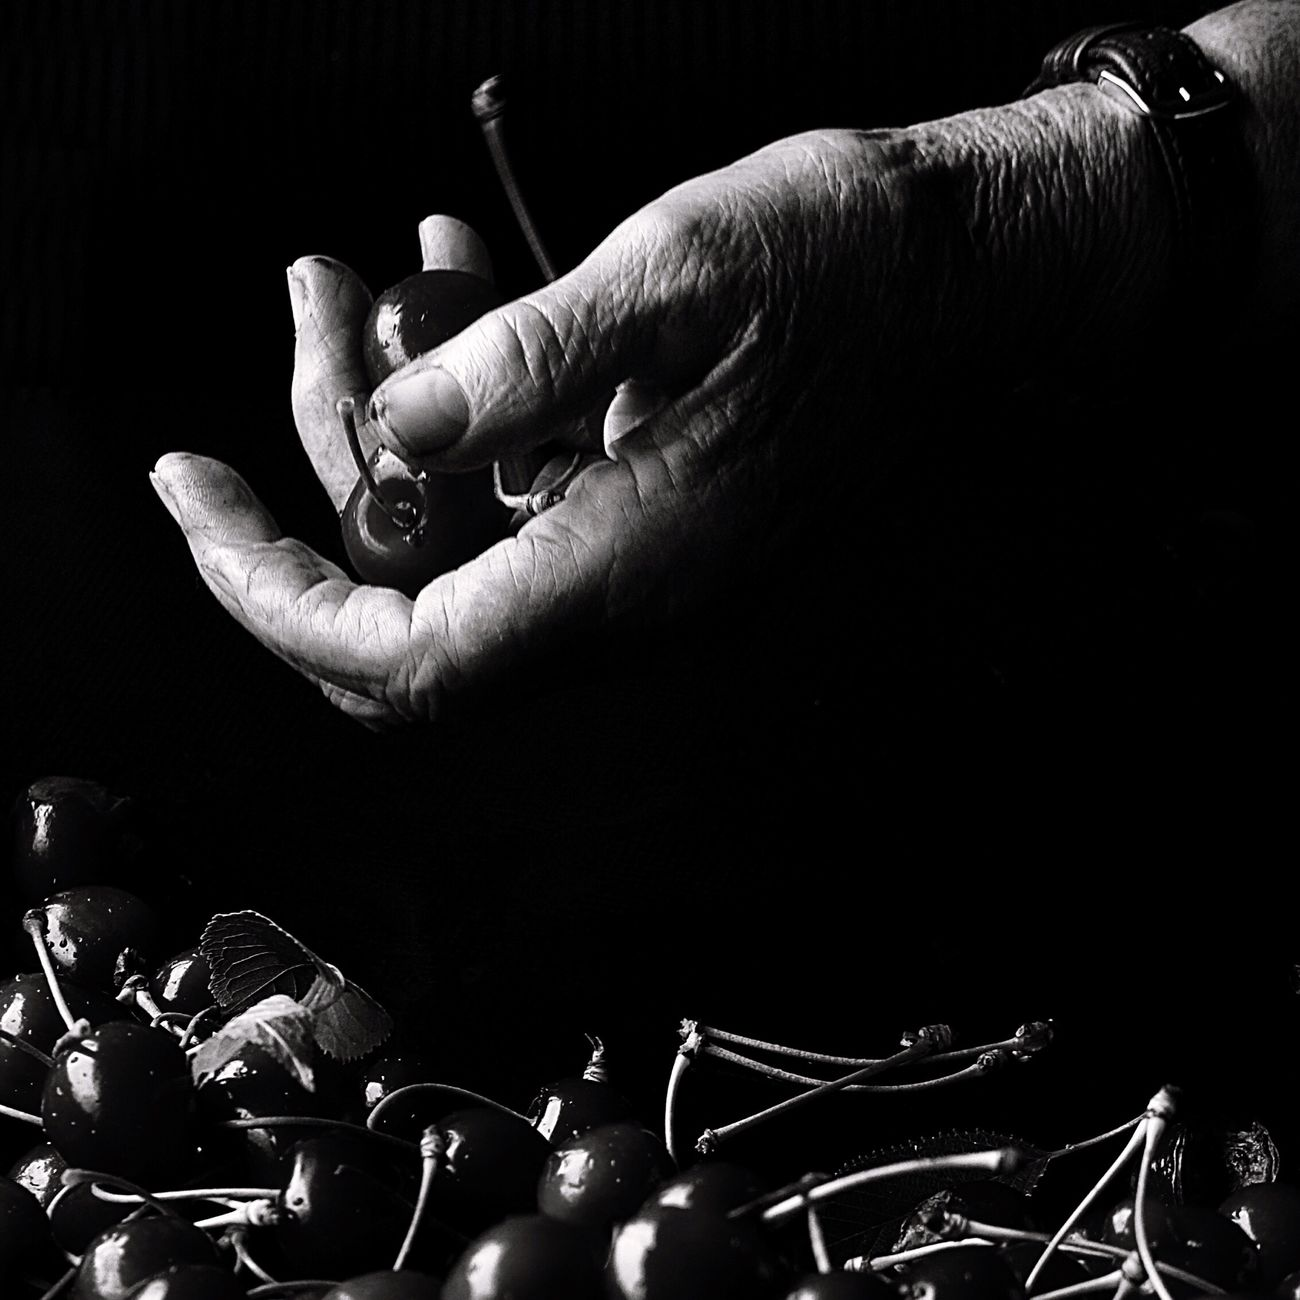 Human Hand Human Body Part Human Finger Black Background Real People Documentary Cherries Black And White Break The Mold Farm Life Fruit Working Hands Black & White Natural Light